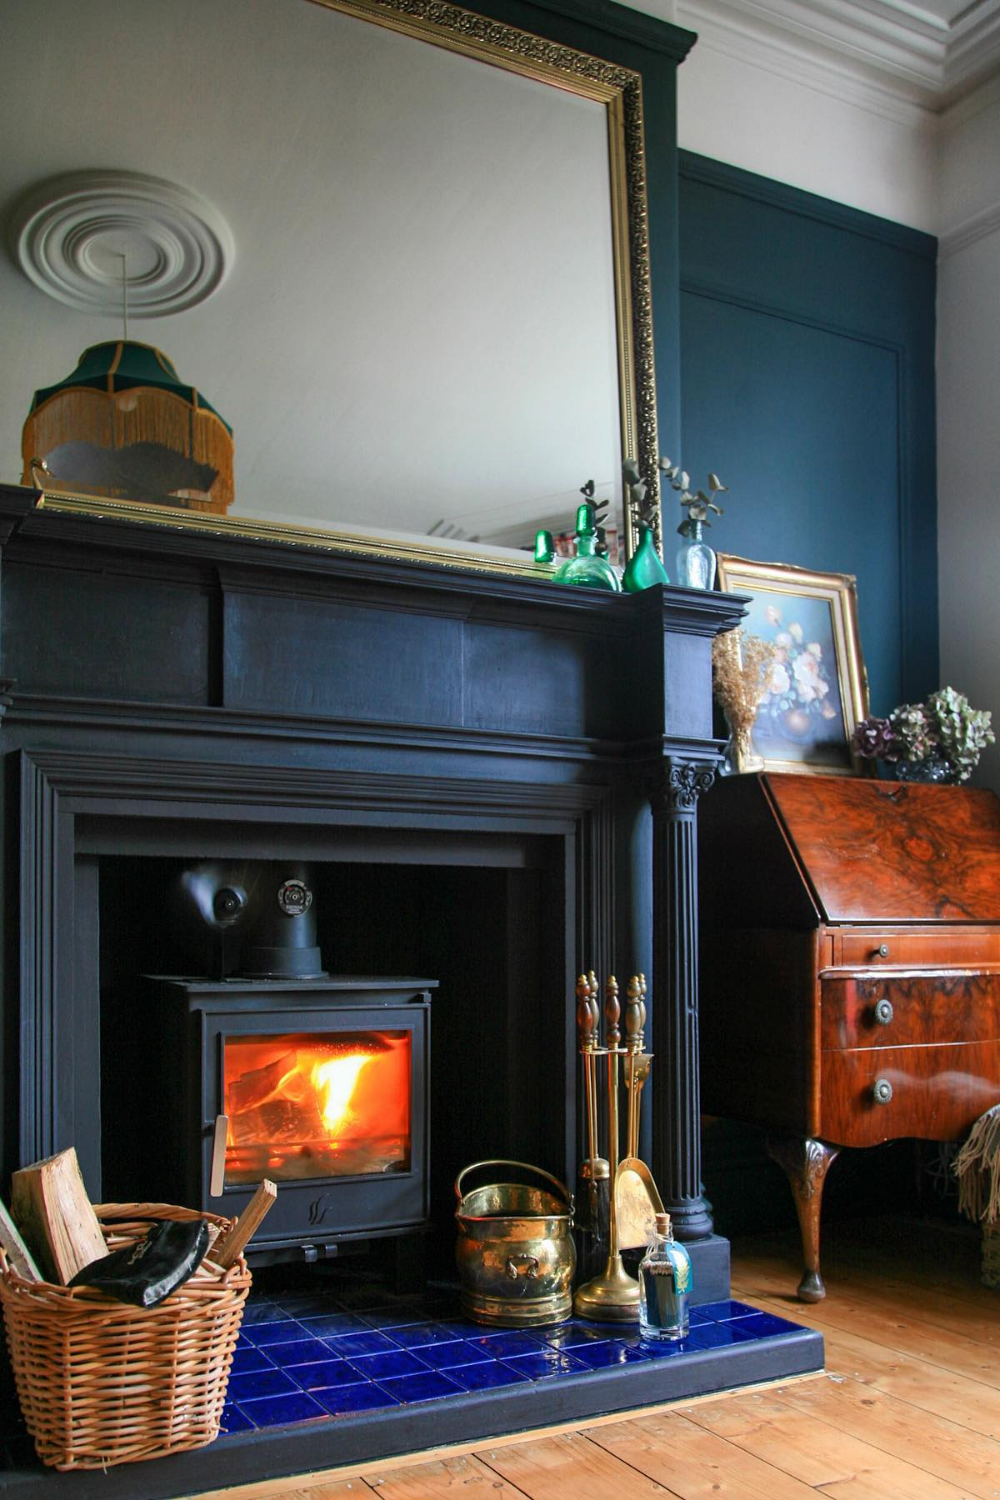 A wood burning stove in a black fireplace with a large gold mirror above it.